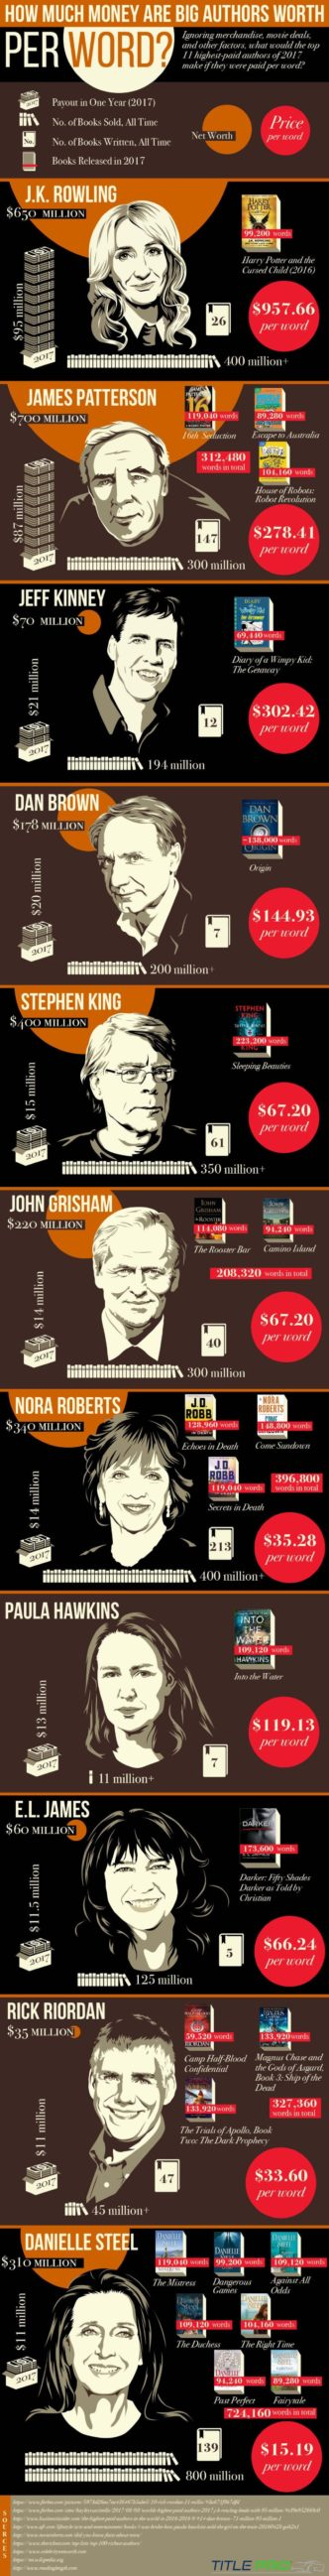 How much are big authors worth per word? #infographic